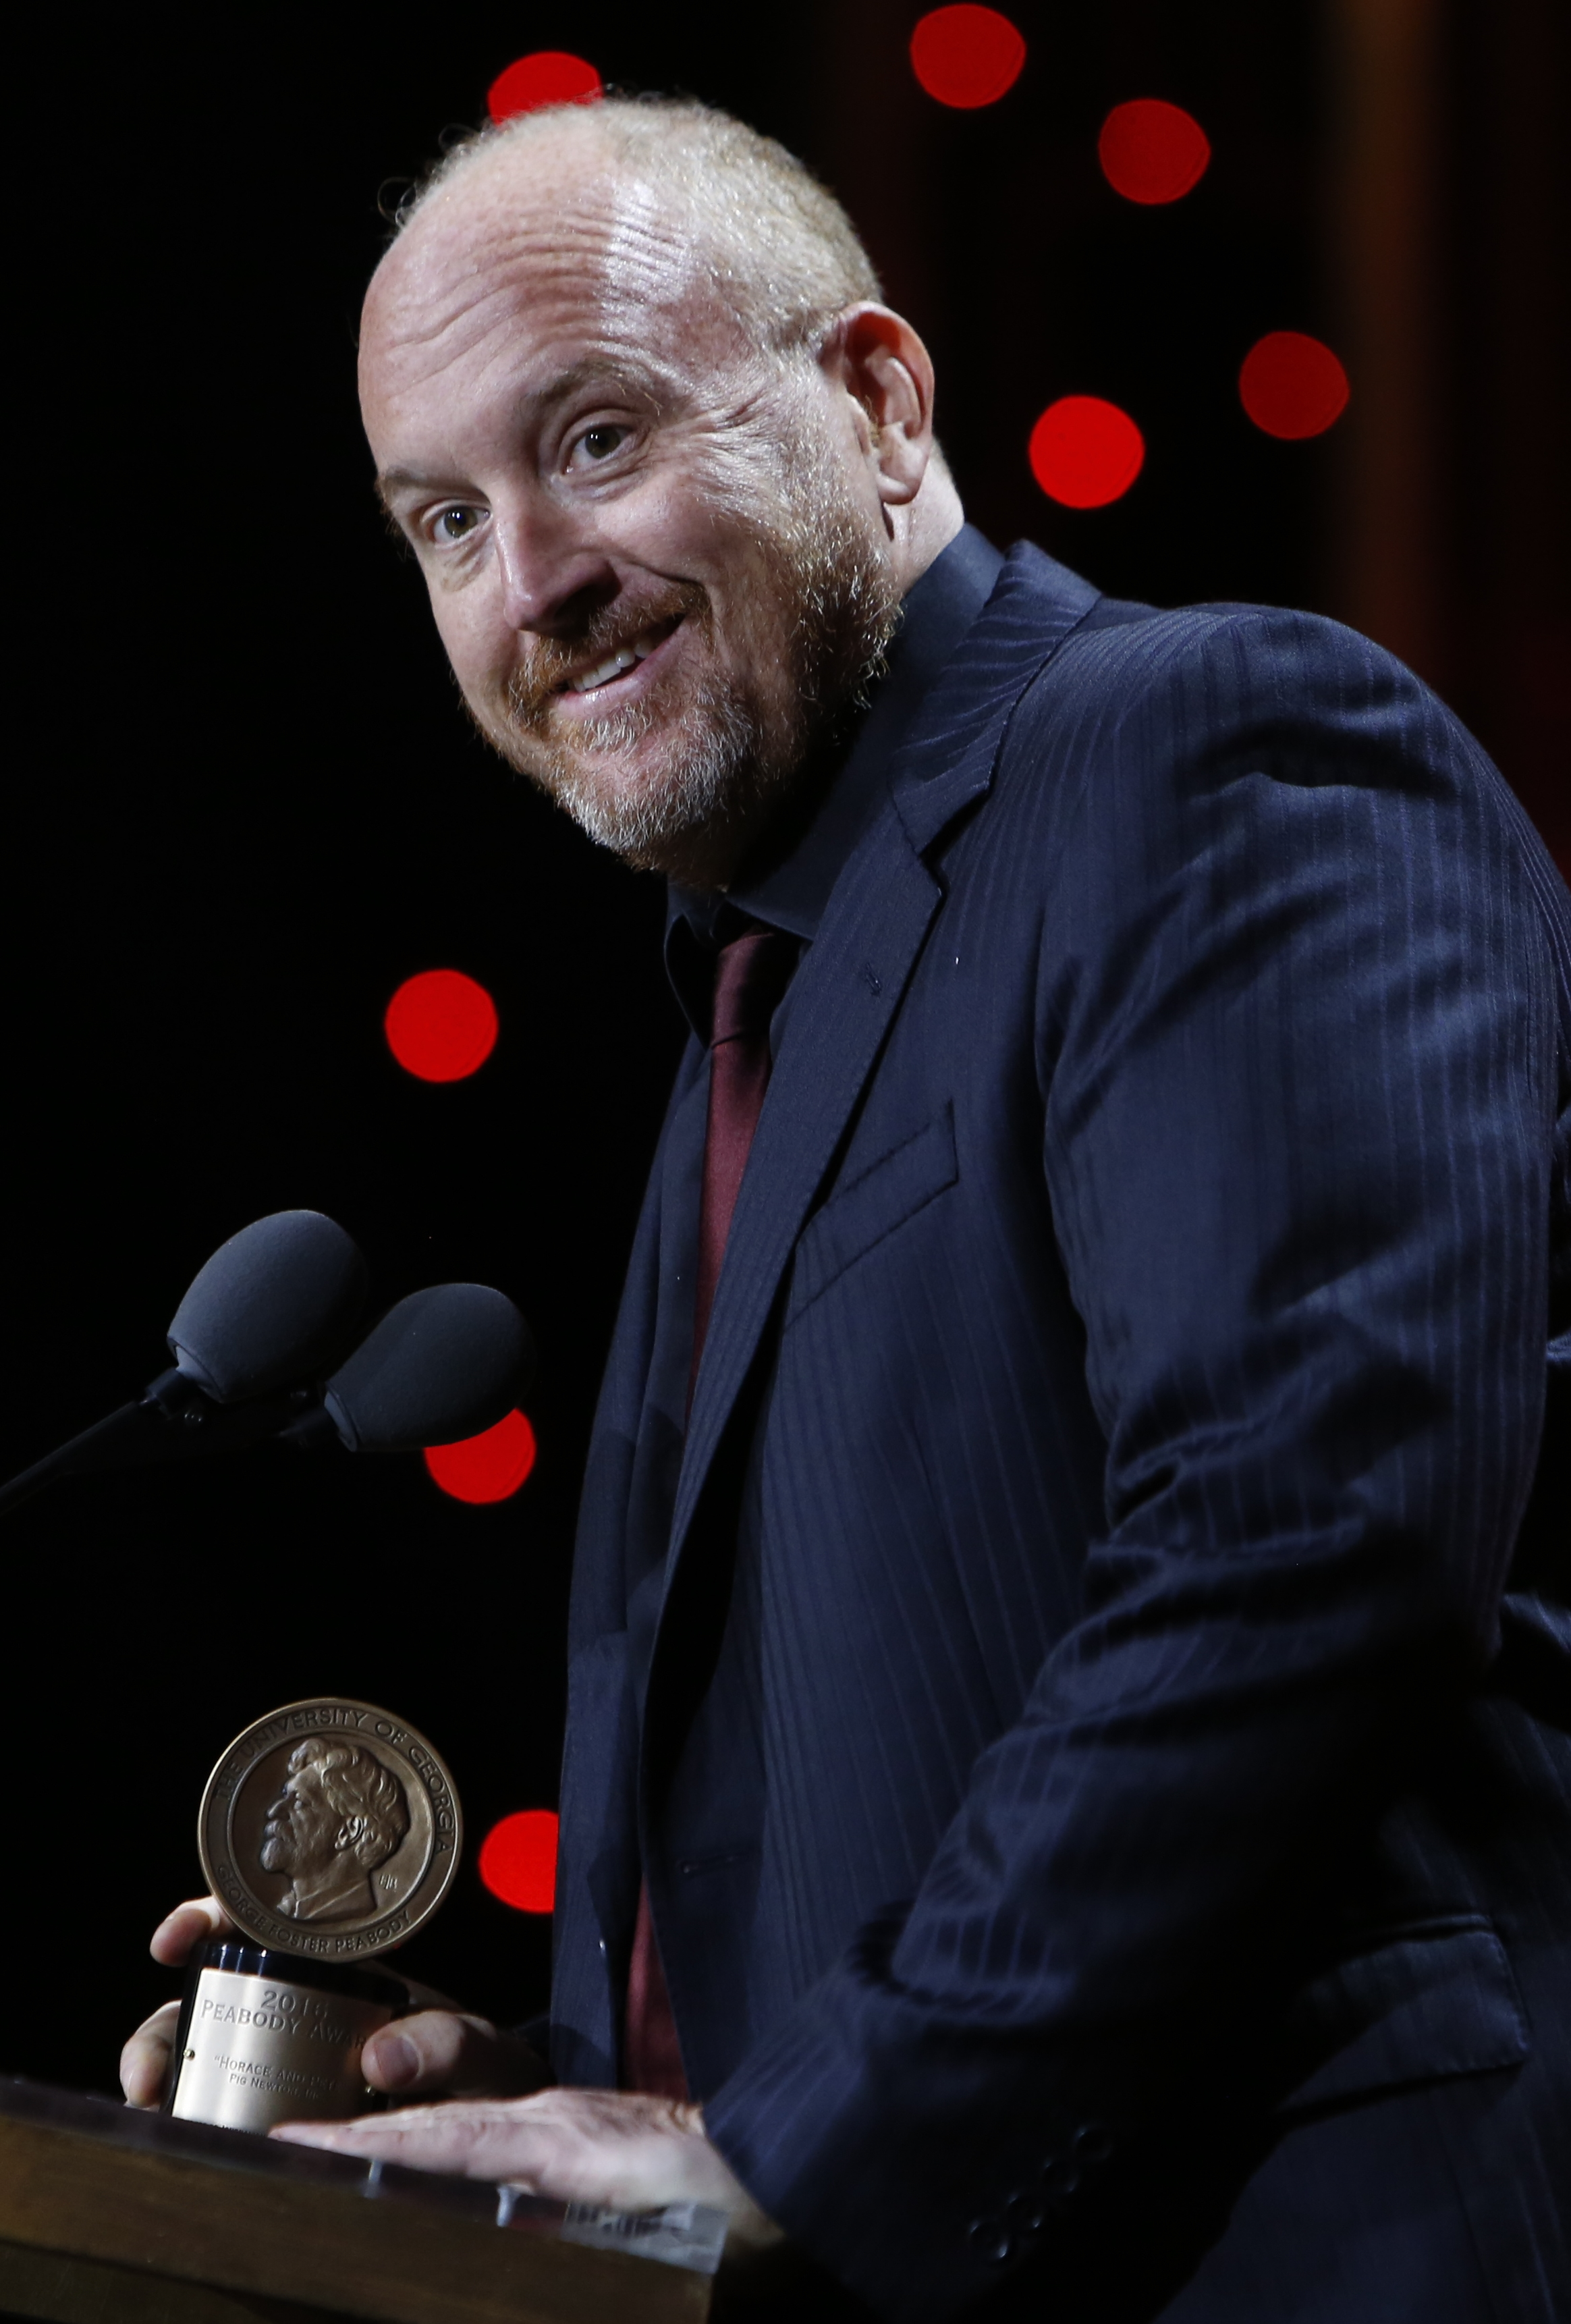 Theyre lying about Louis C.K.: Hes right about Common